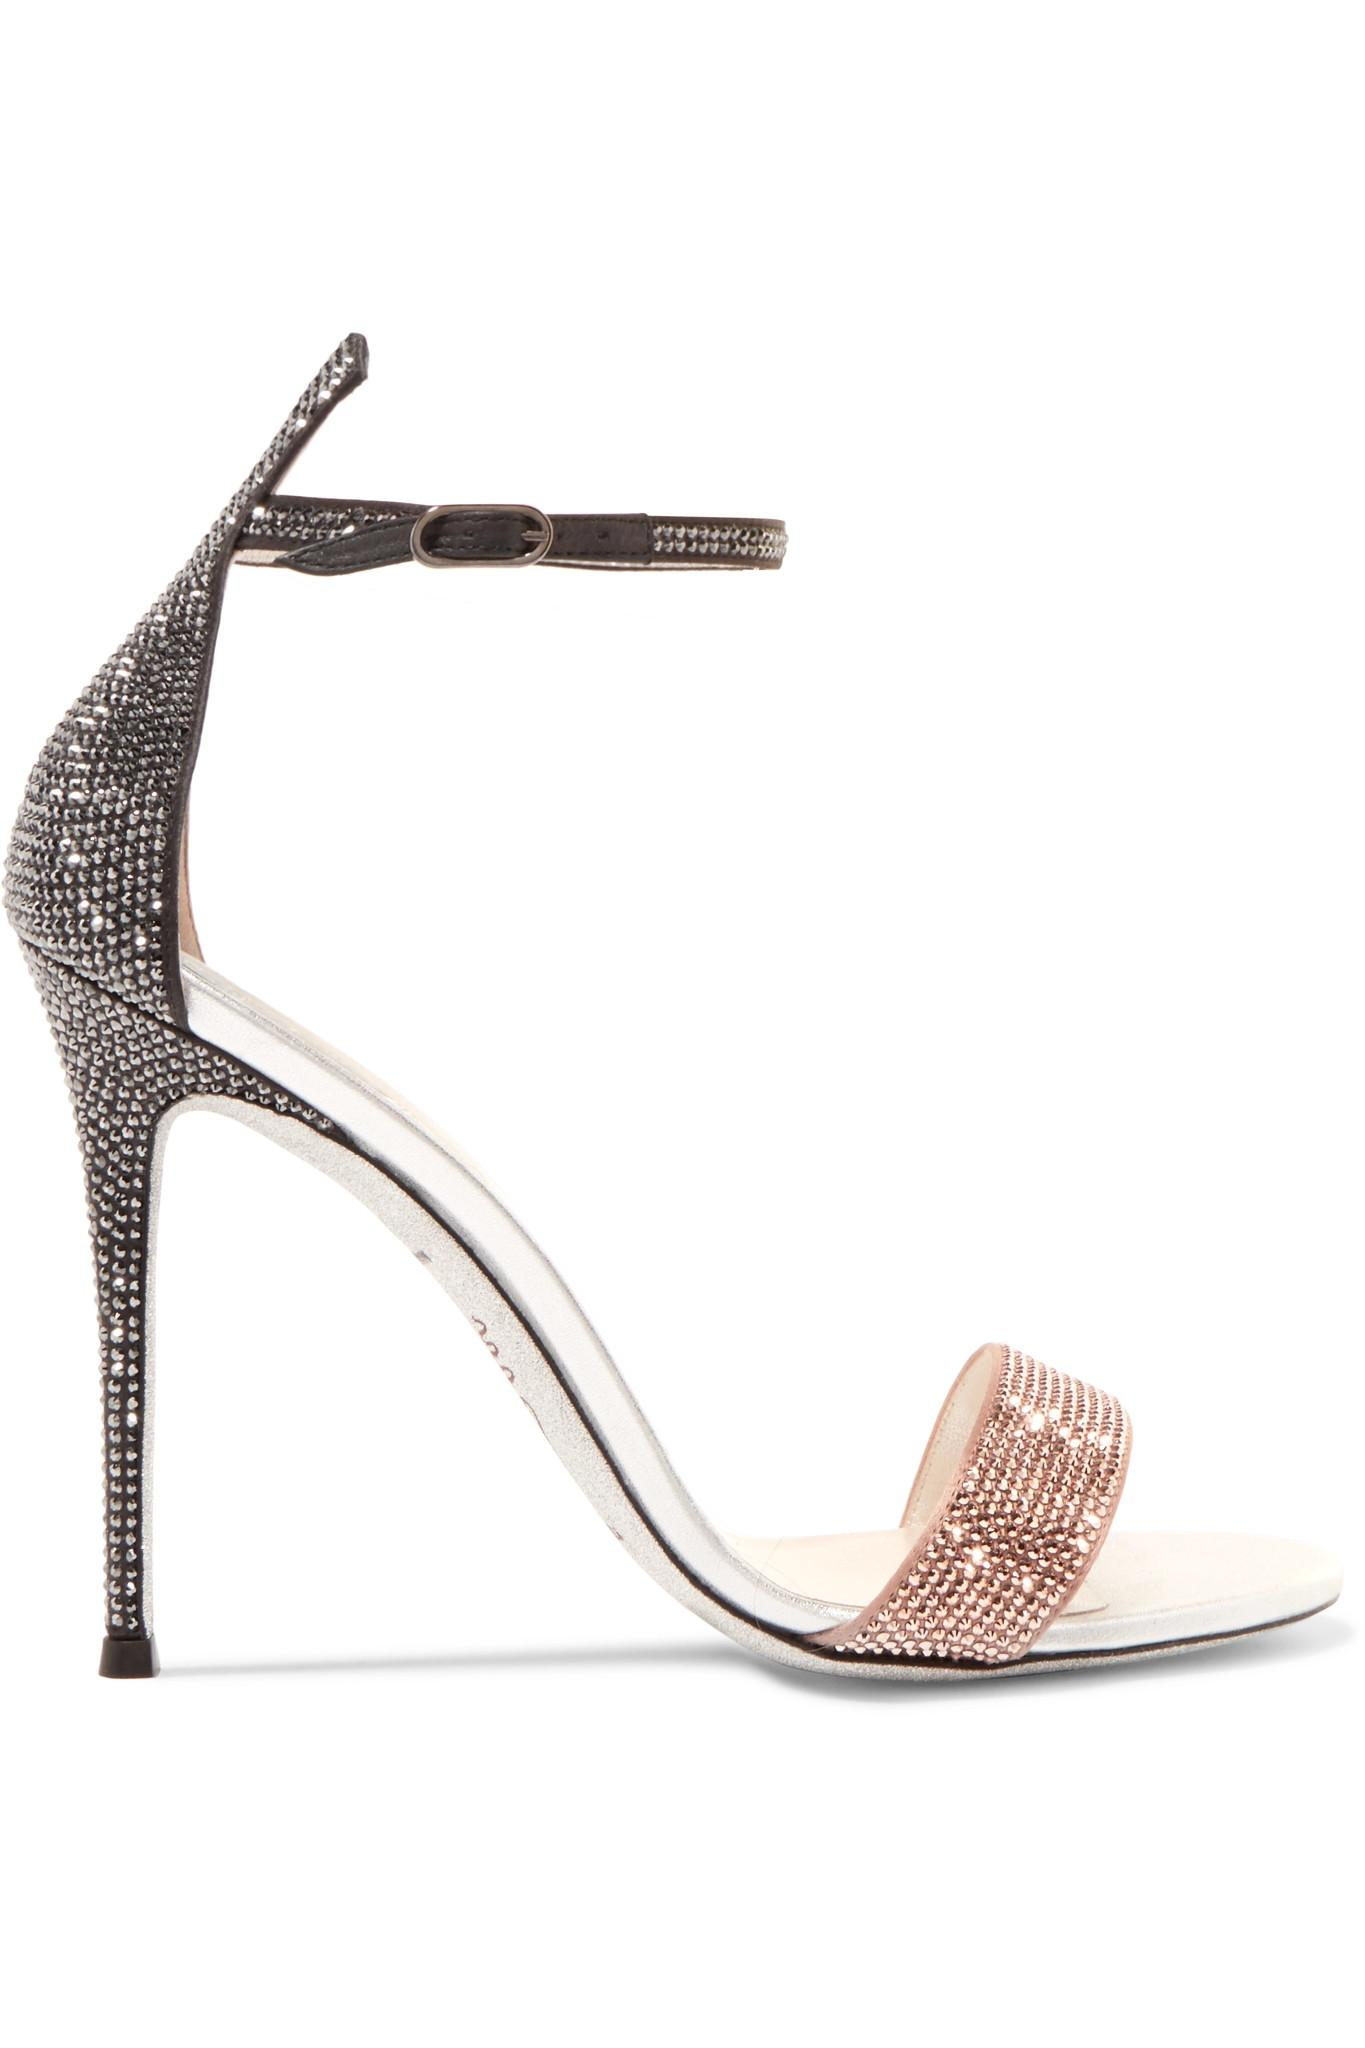 cecb5e7a9ad Lyst - Rene Caovilla Crystal-embellished Satin And Leather Sandals